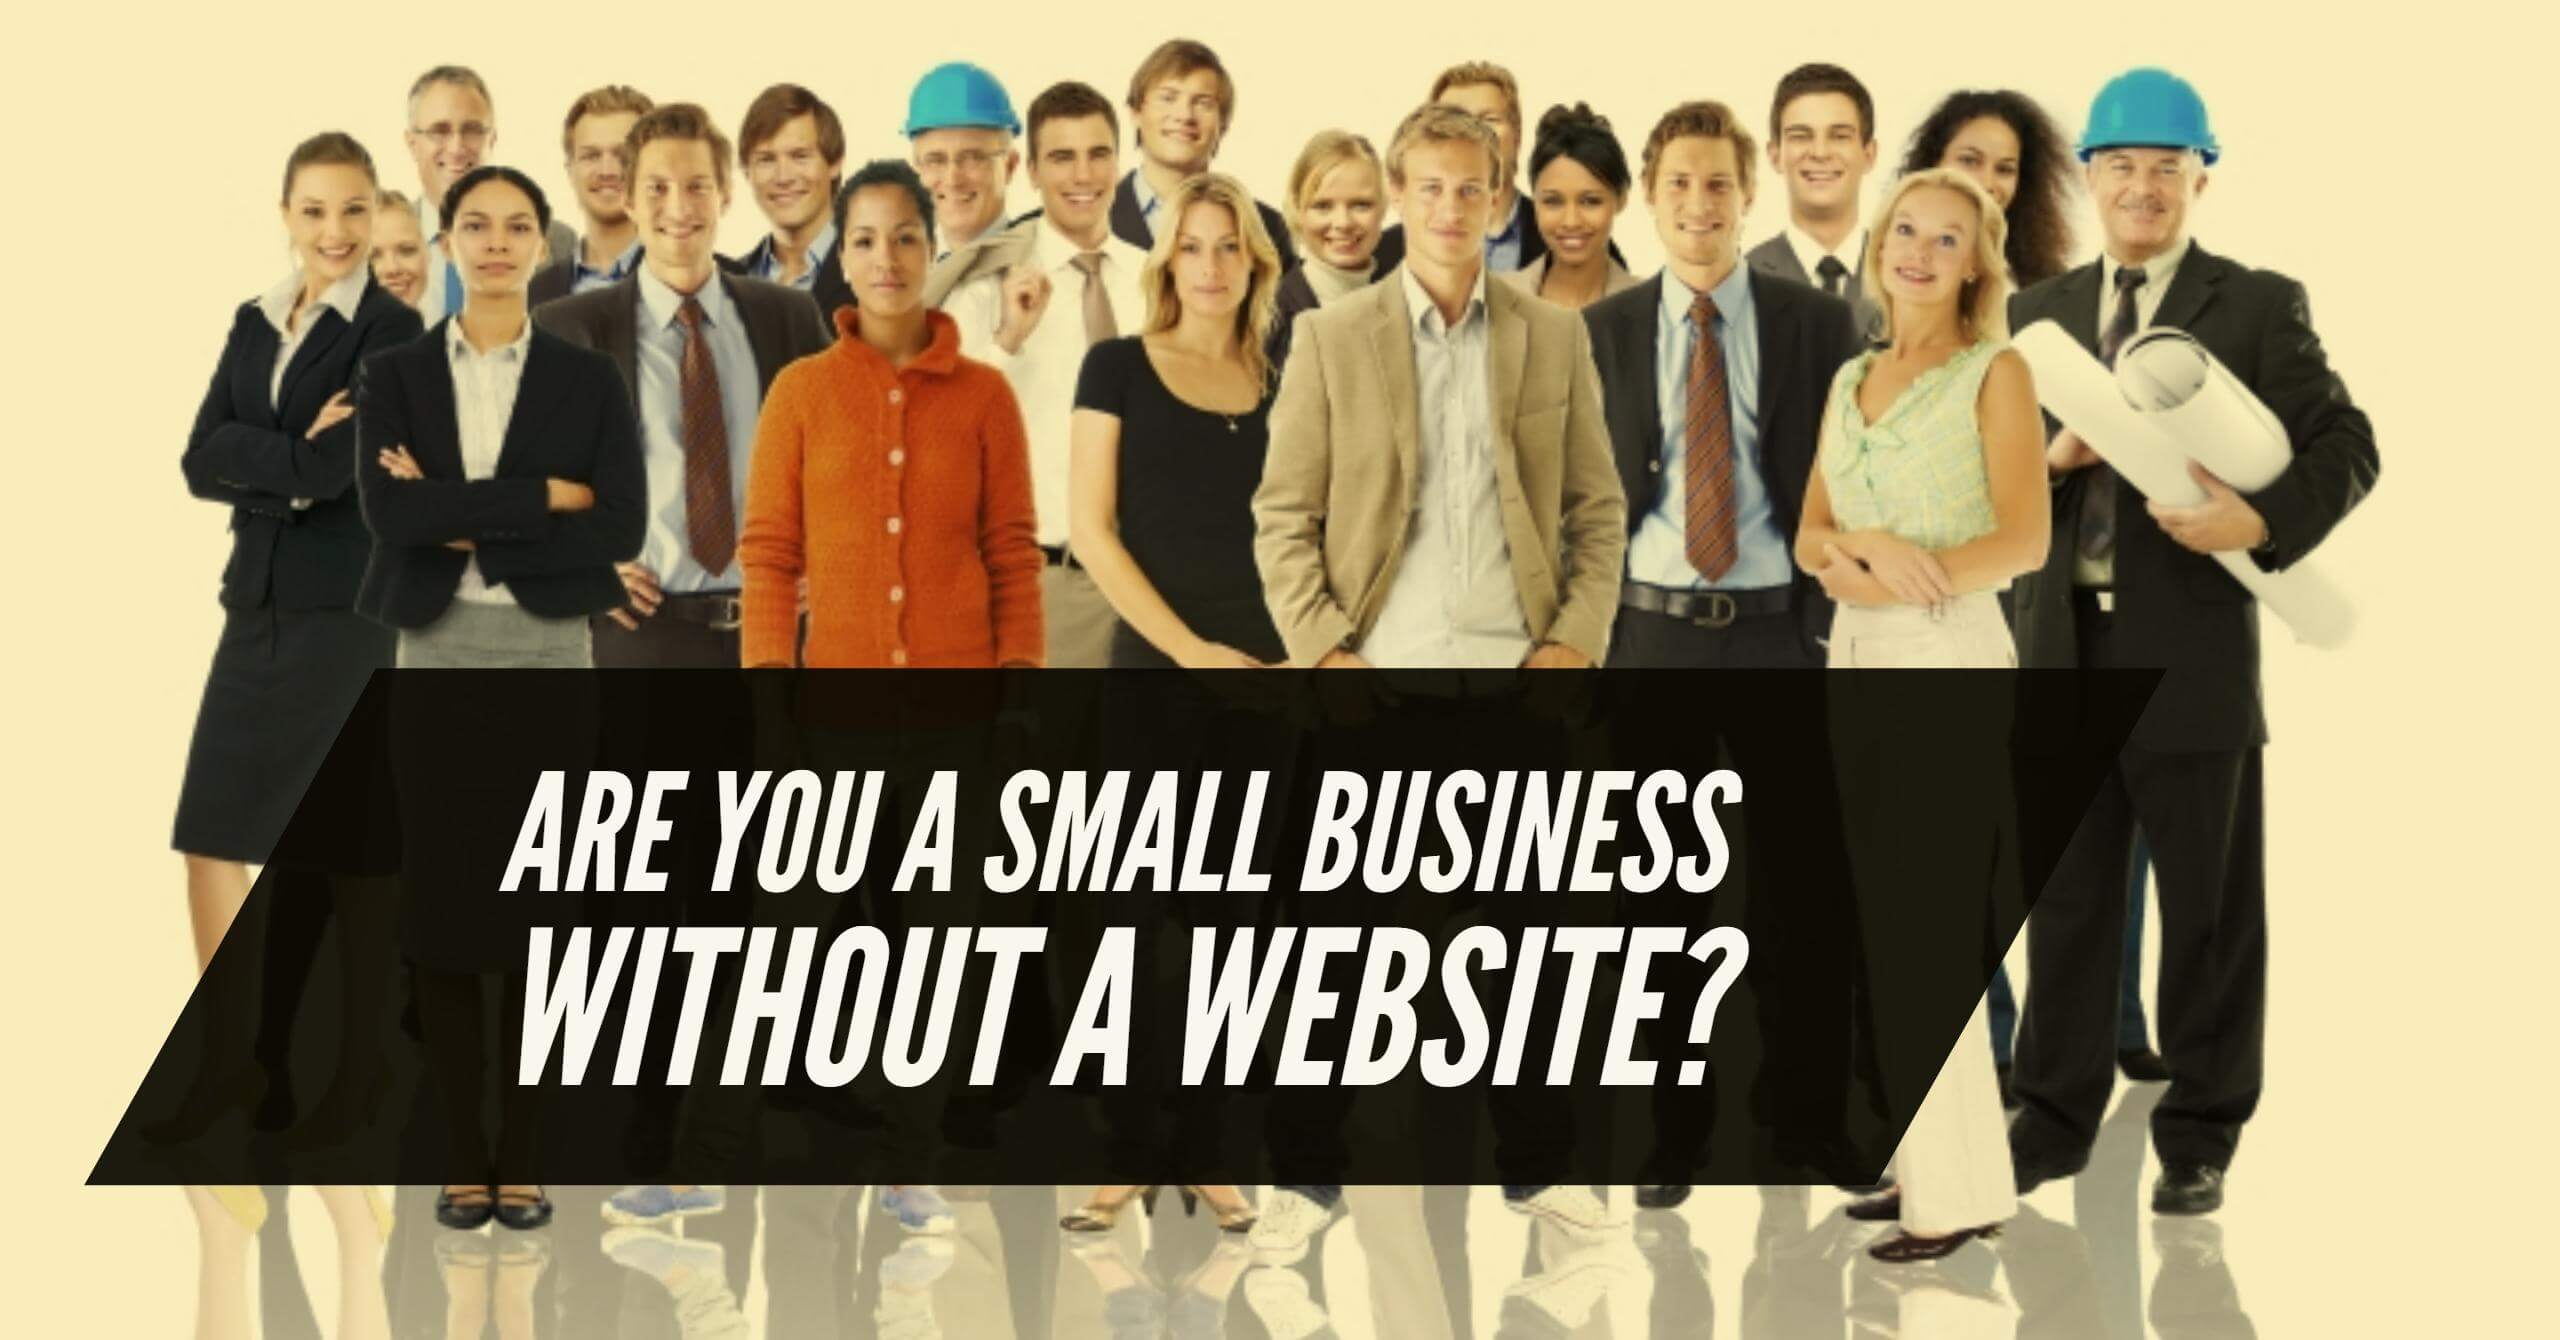 Are You A Business With No Website?